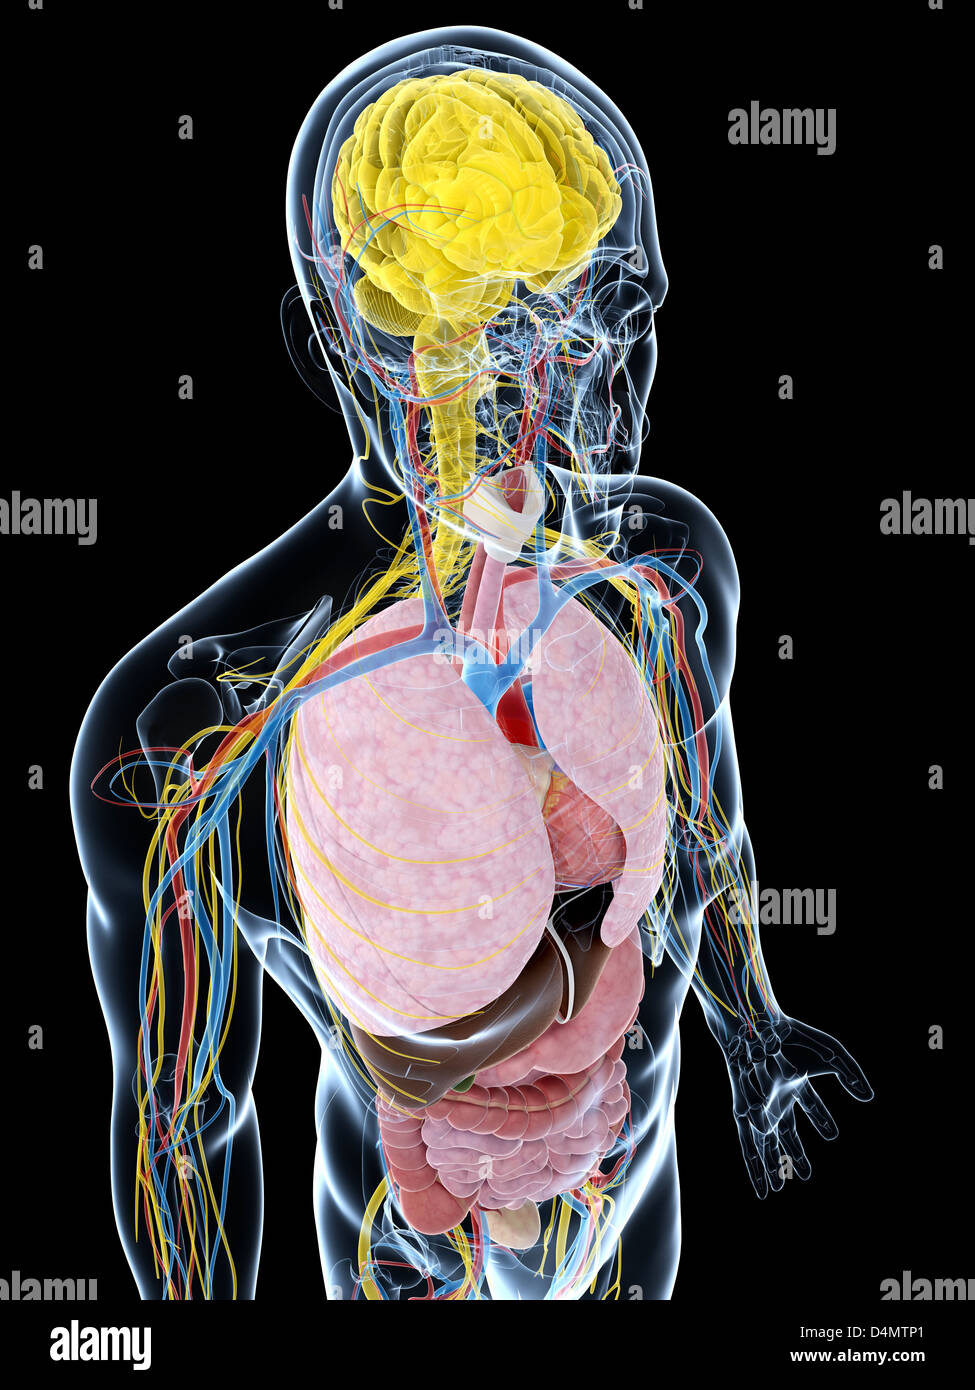 Anatomie Masculine Photo anatomie masculine banque d'images, photo stock: 54548201 - alamy